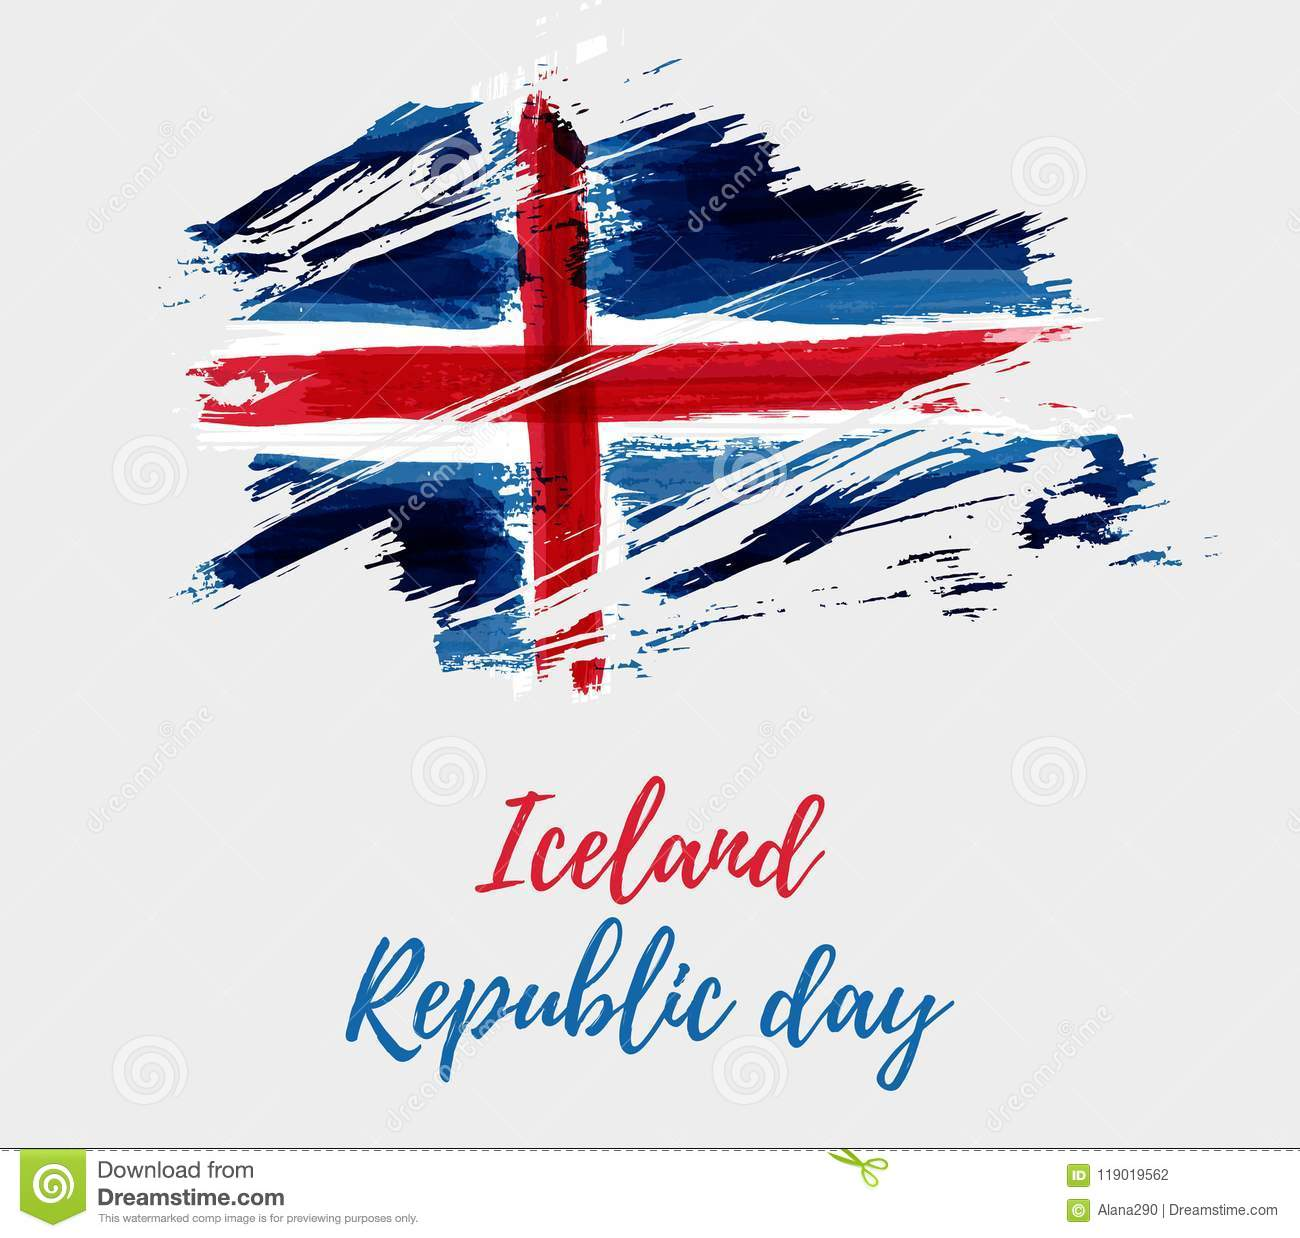 Iceland Republic Day Background Stock Vector - Illustration of brush ...